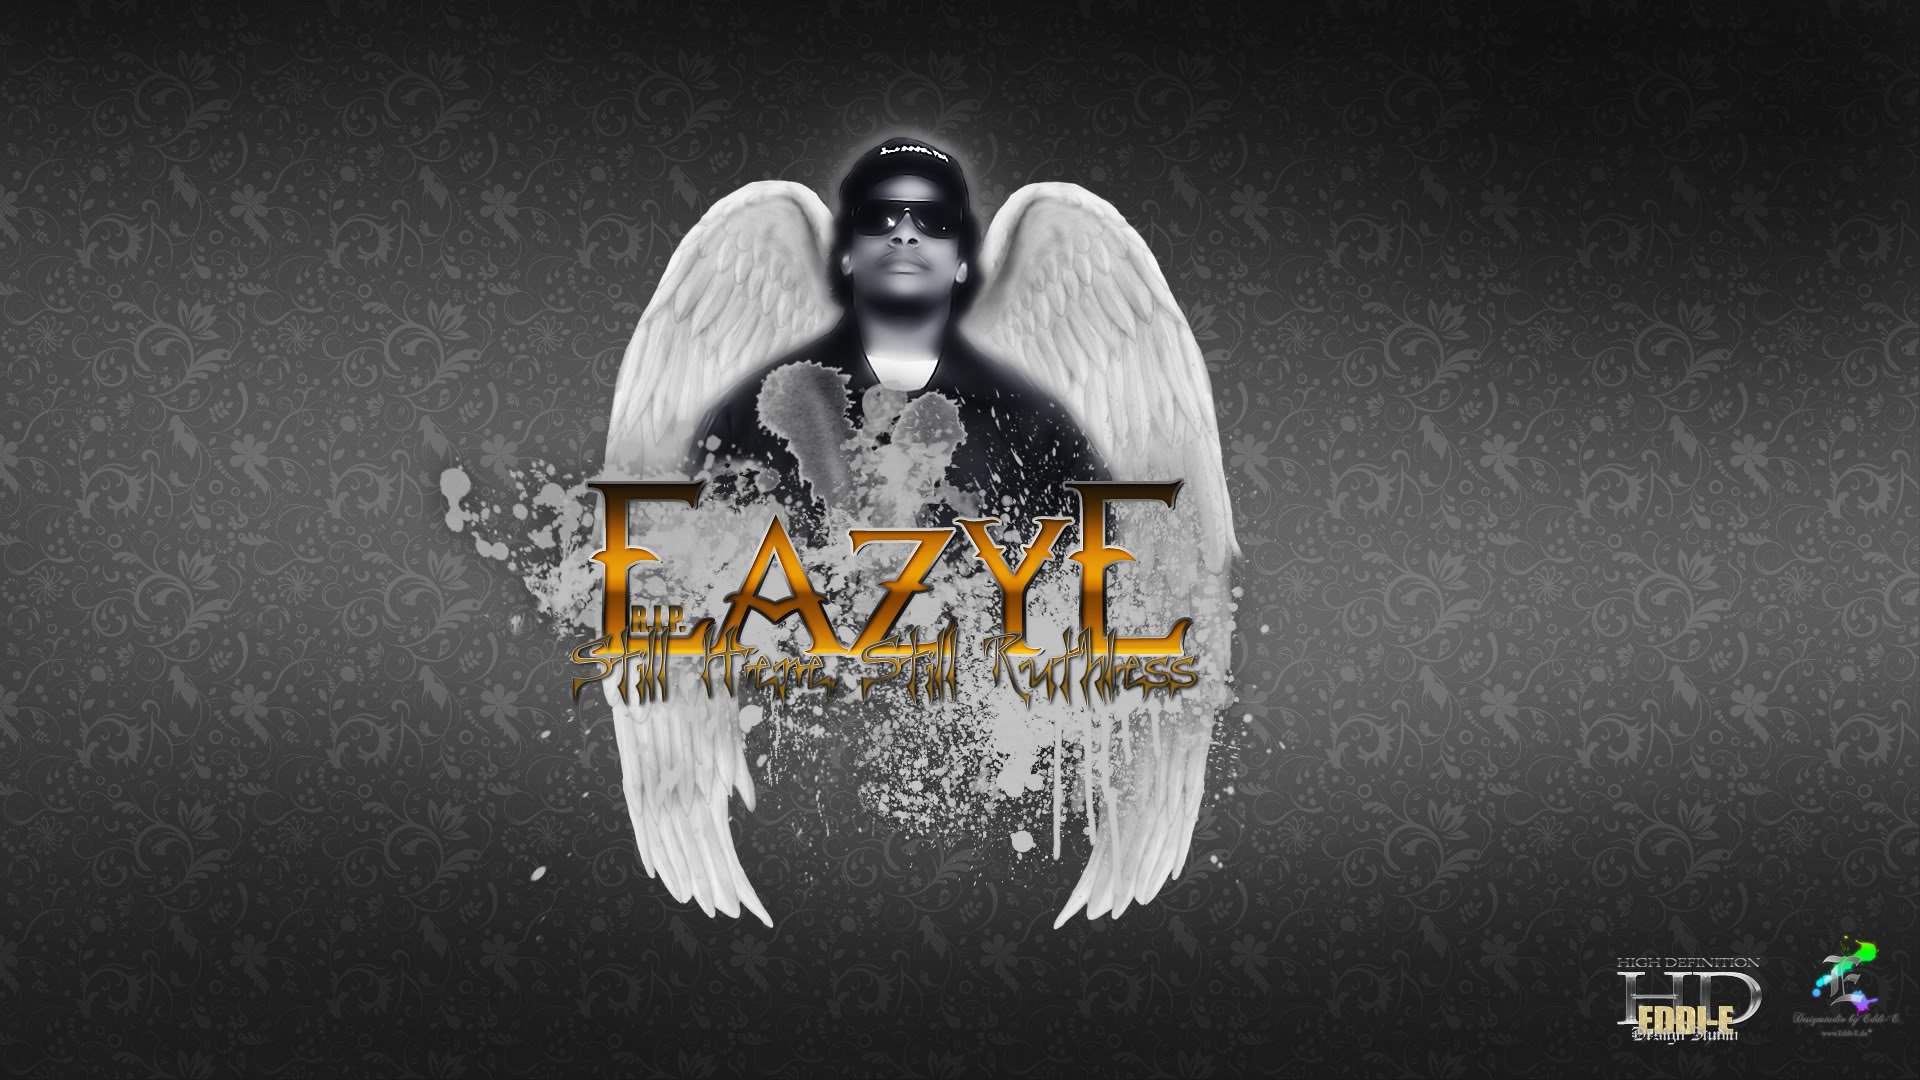 eazy e wallpapers high resolution and quality download